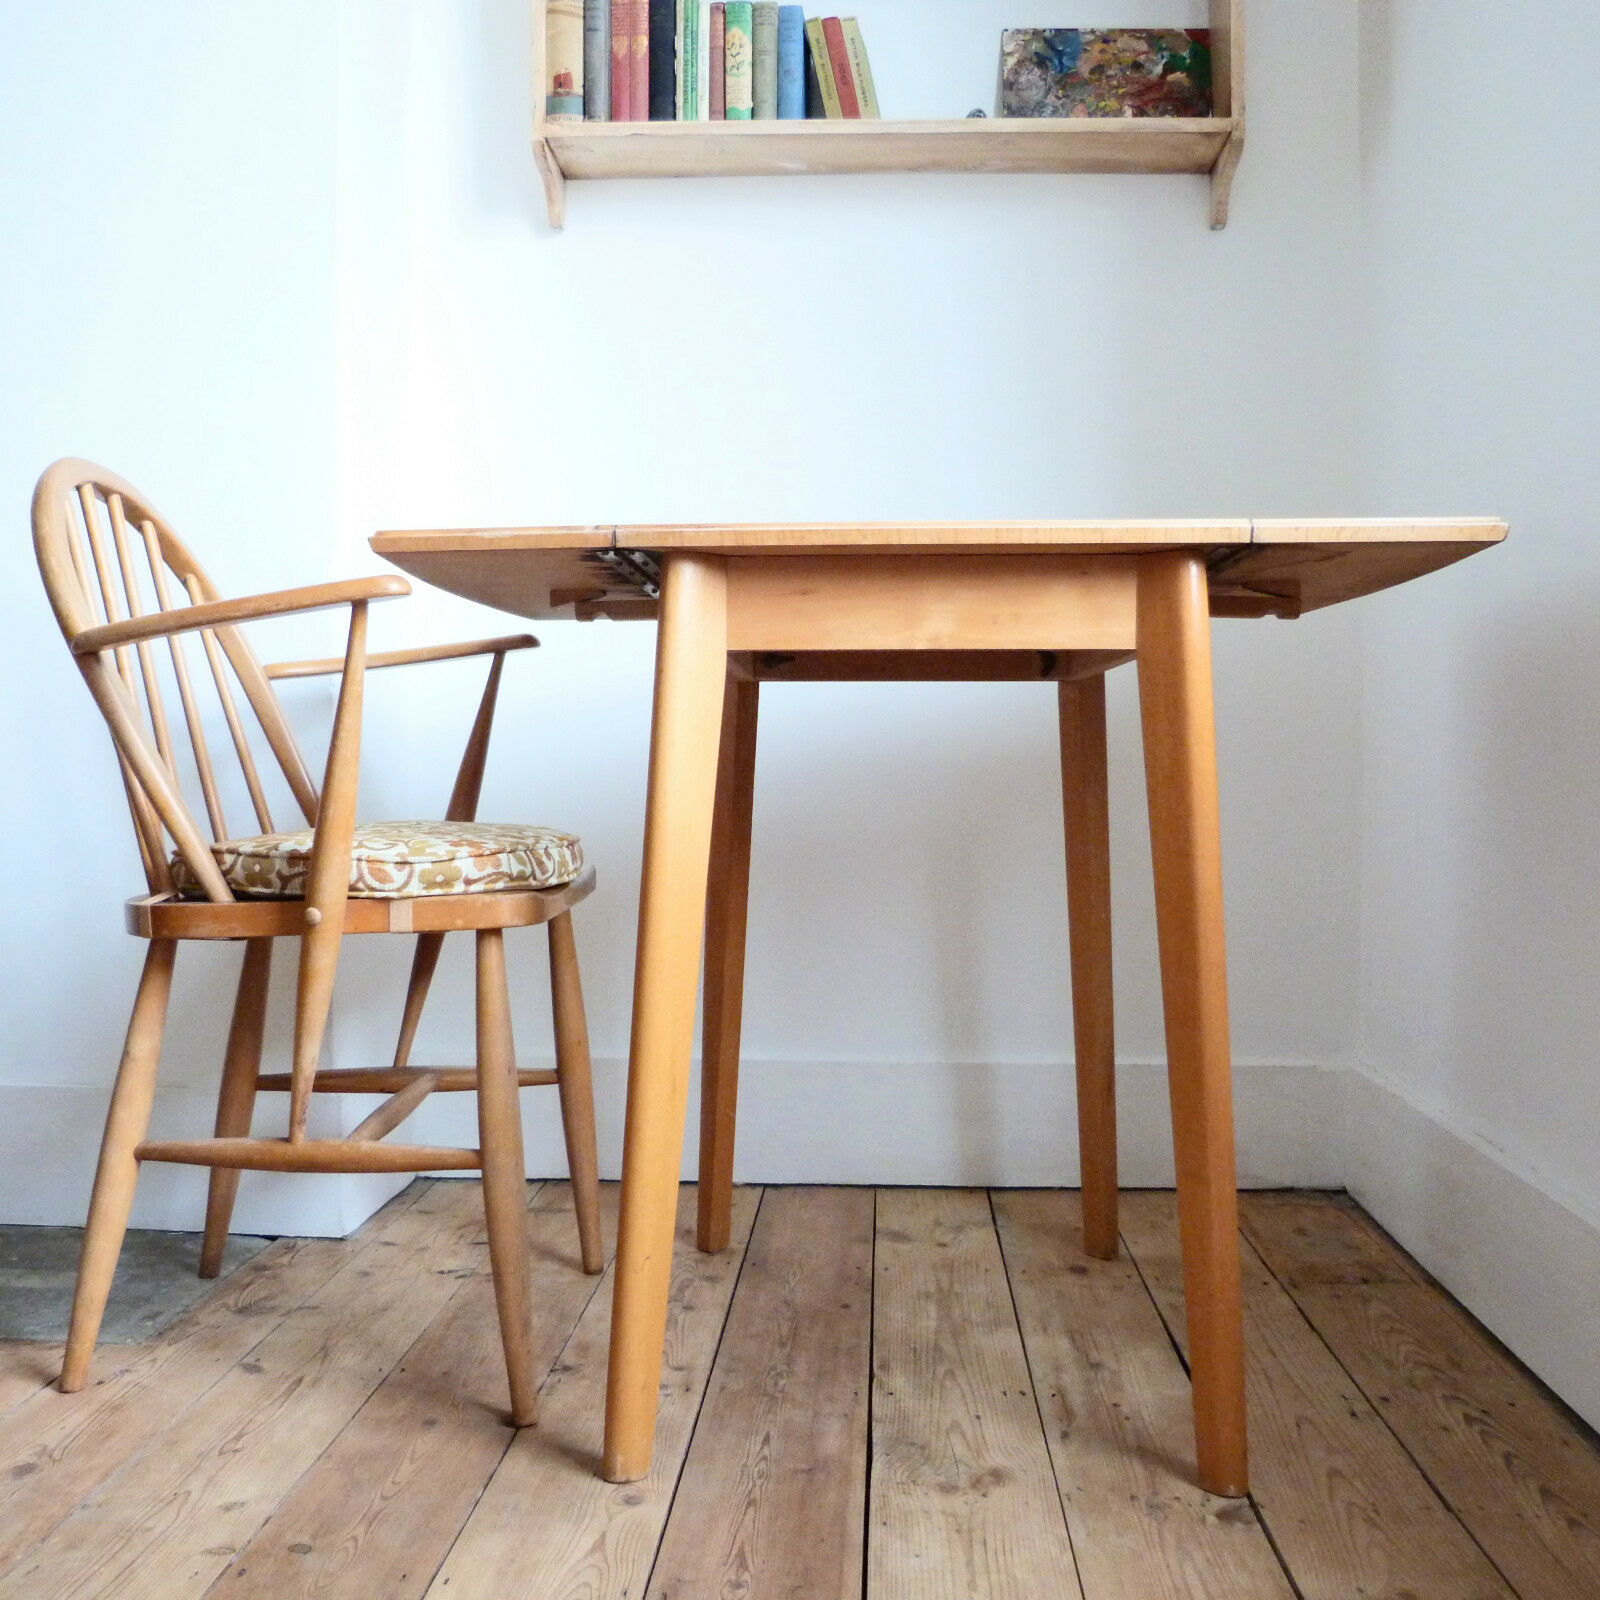 Formica kitchen tables mid century formica kitchen table at 1stdibs mid century formica - Formica top kitchen tables ...